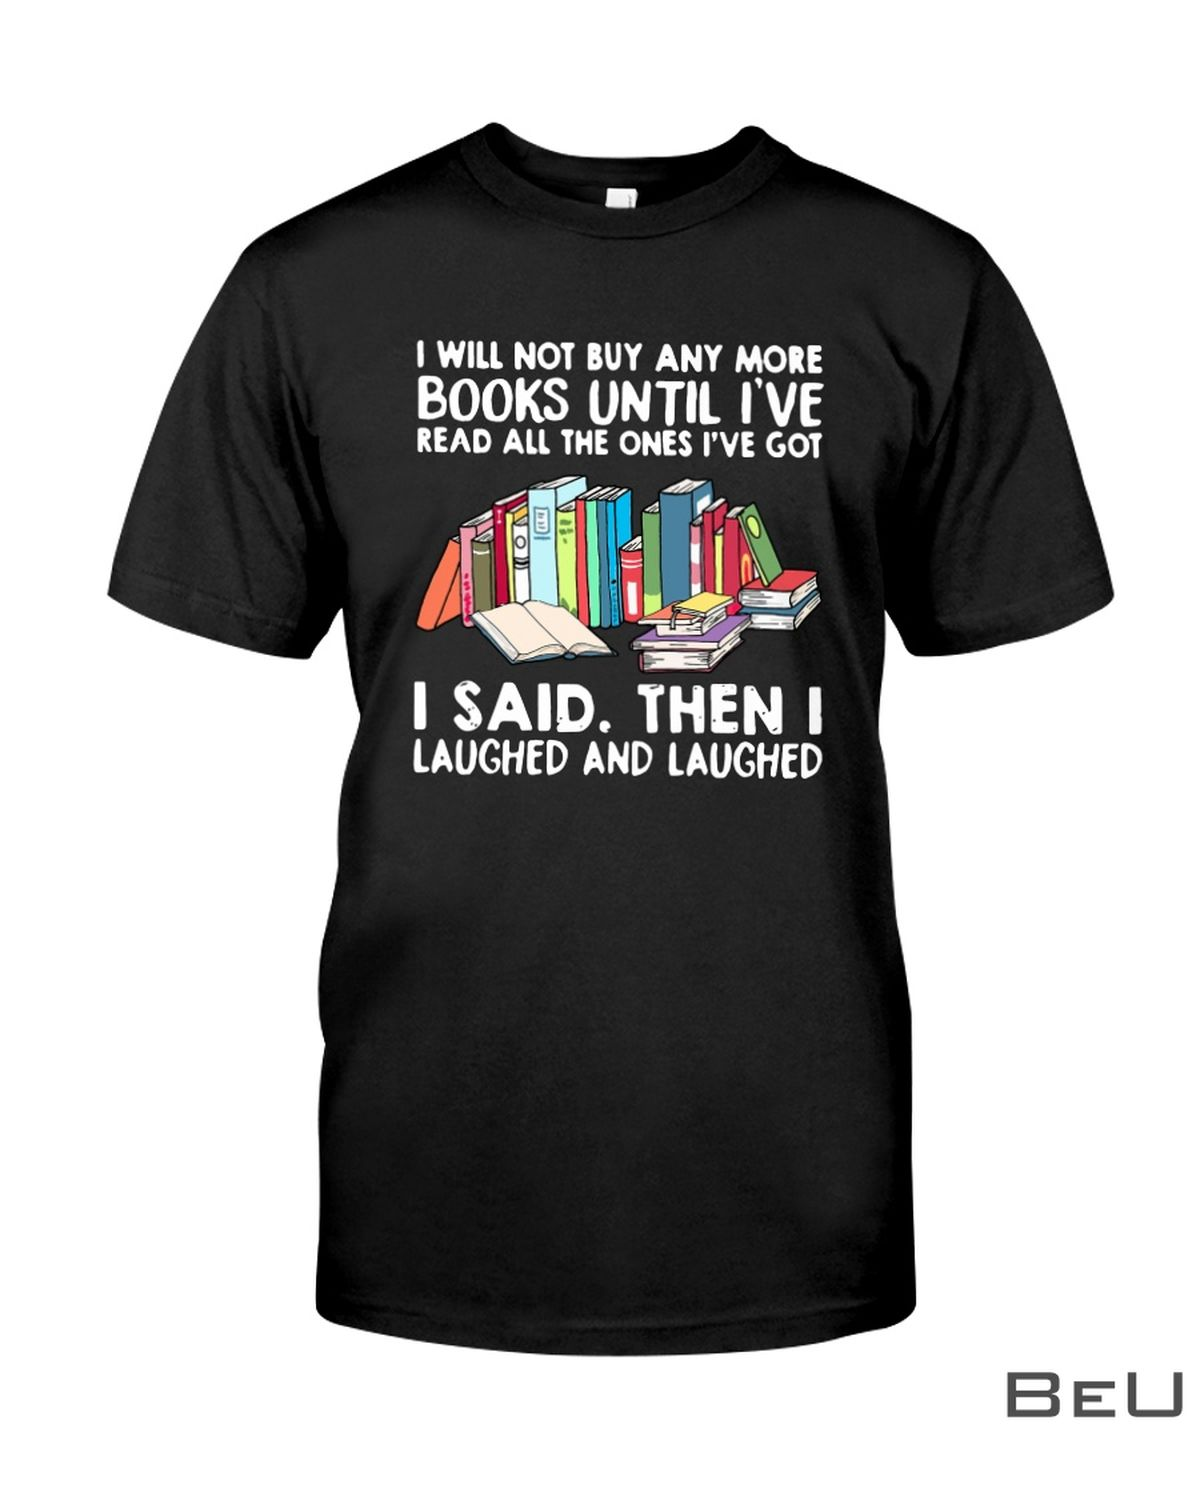 I Will Not Buy Any More Books Until I've Read All The One's Got I Said Then I Laughed And Laughed Shirt, hoodie, tank top